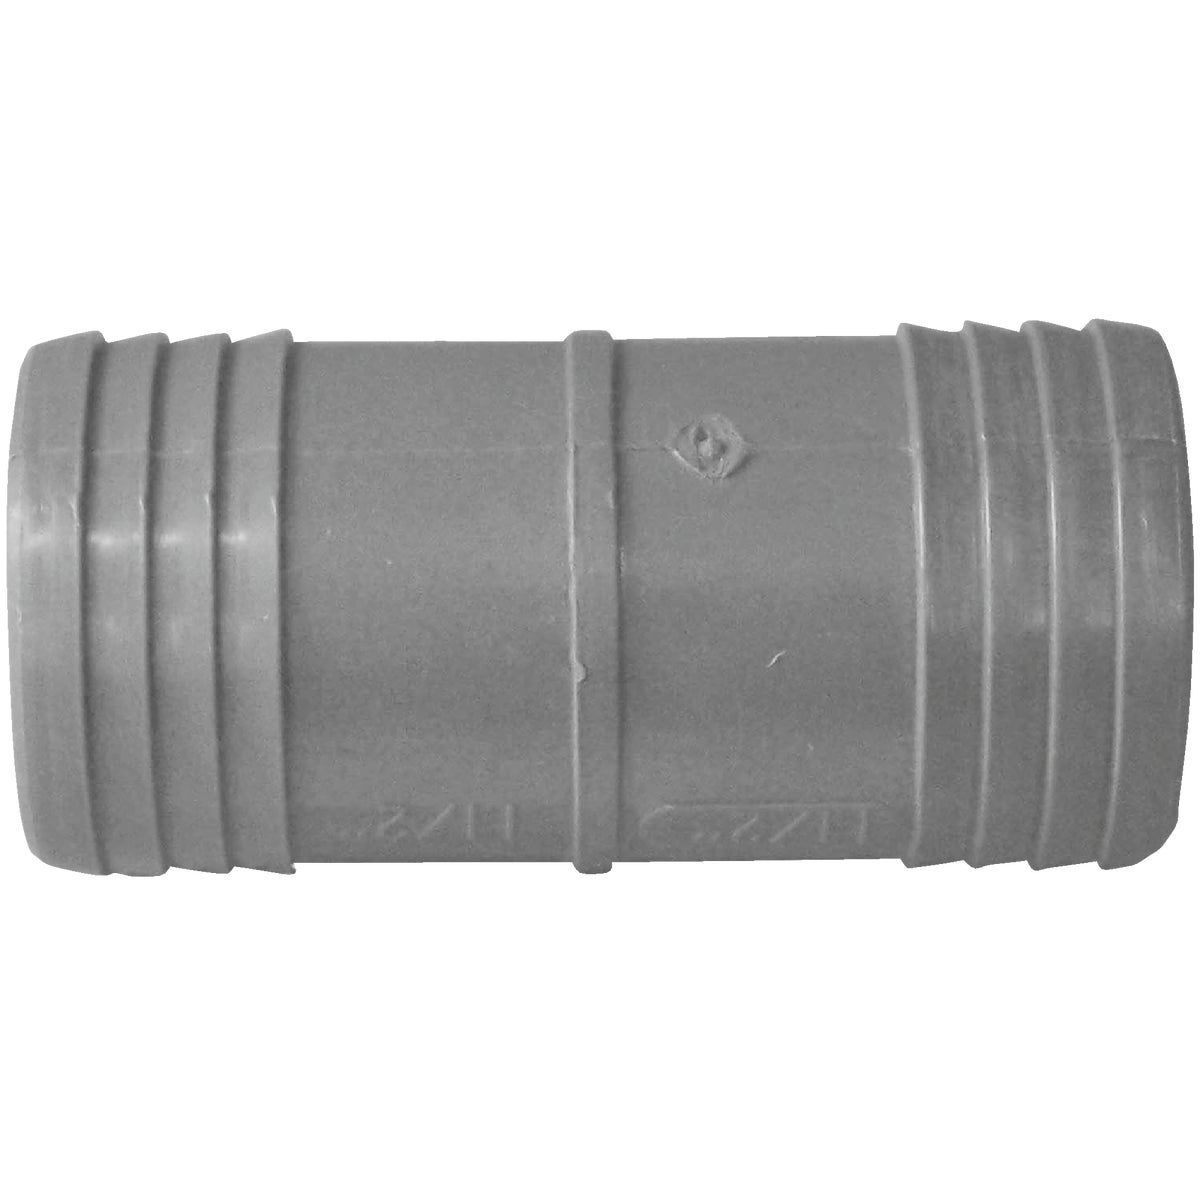 "1-1/2"" POLY INS COUPLING - 350115 by Genova Inc"